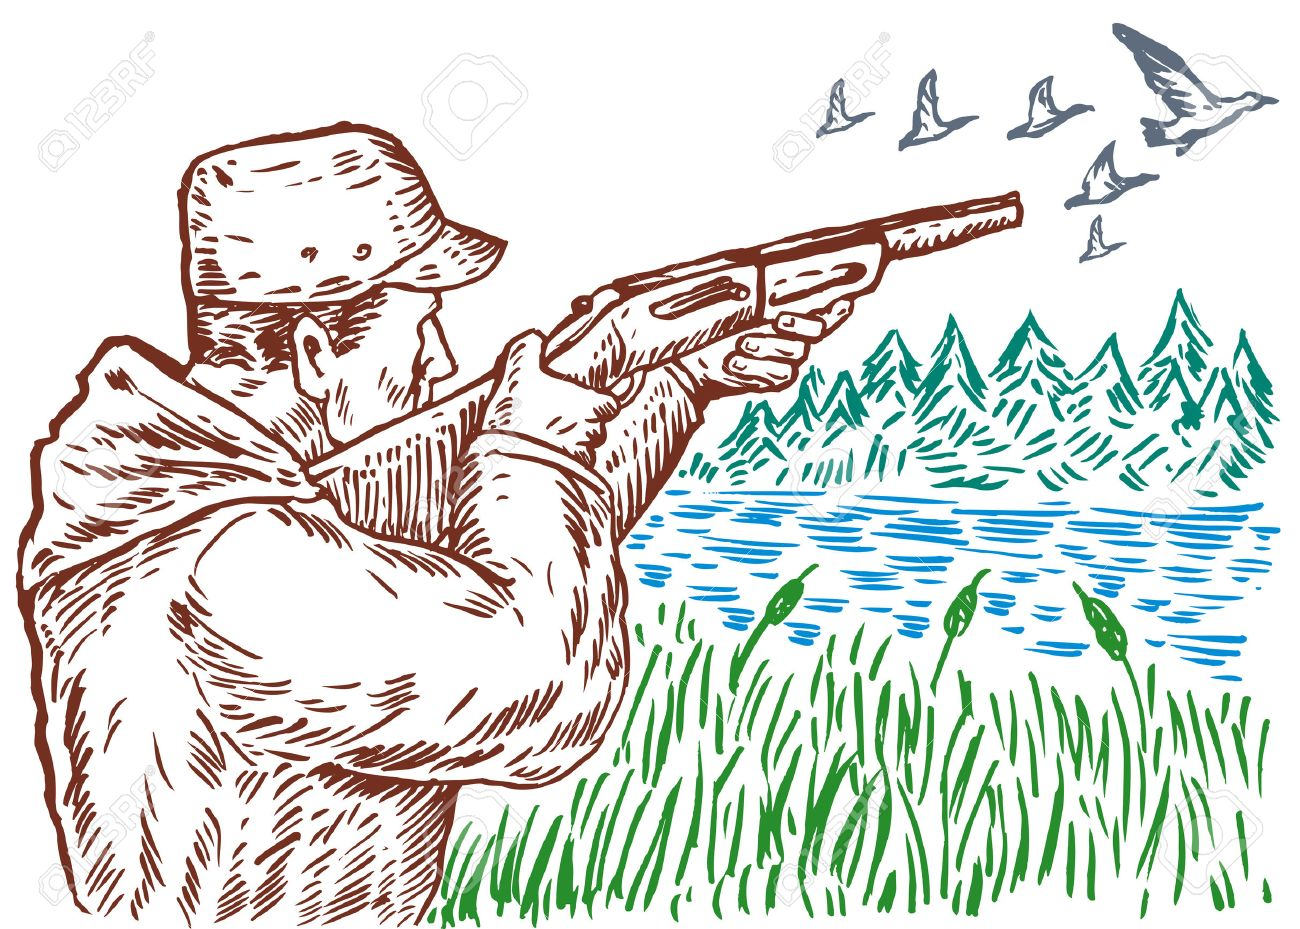 3 661 duck hunting stock illustrations cliparts and royalty free